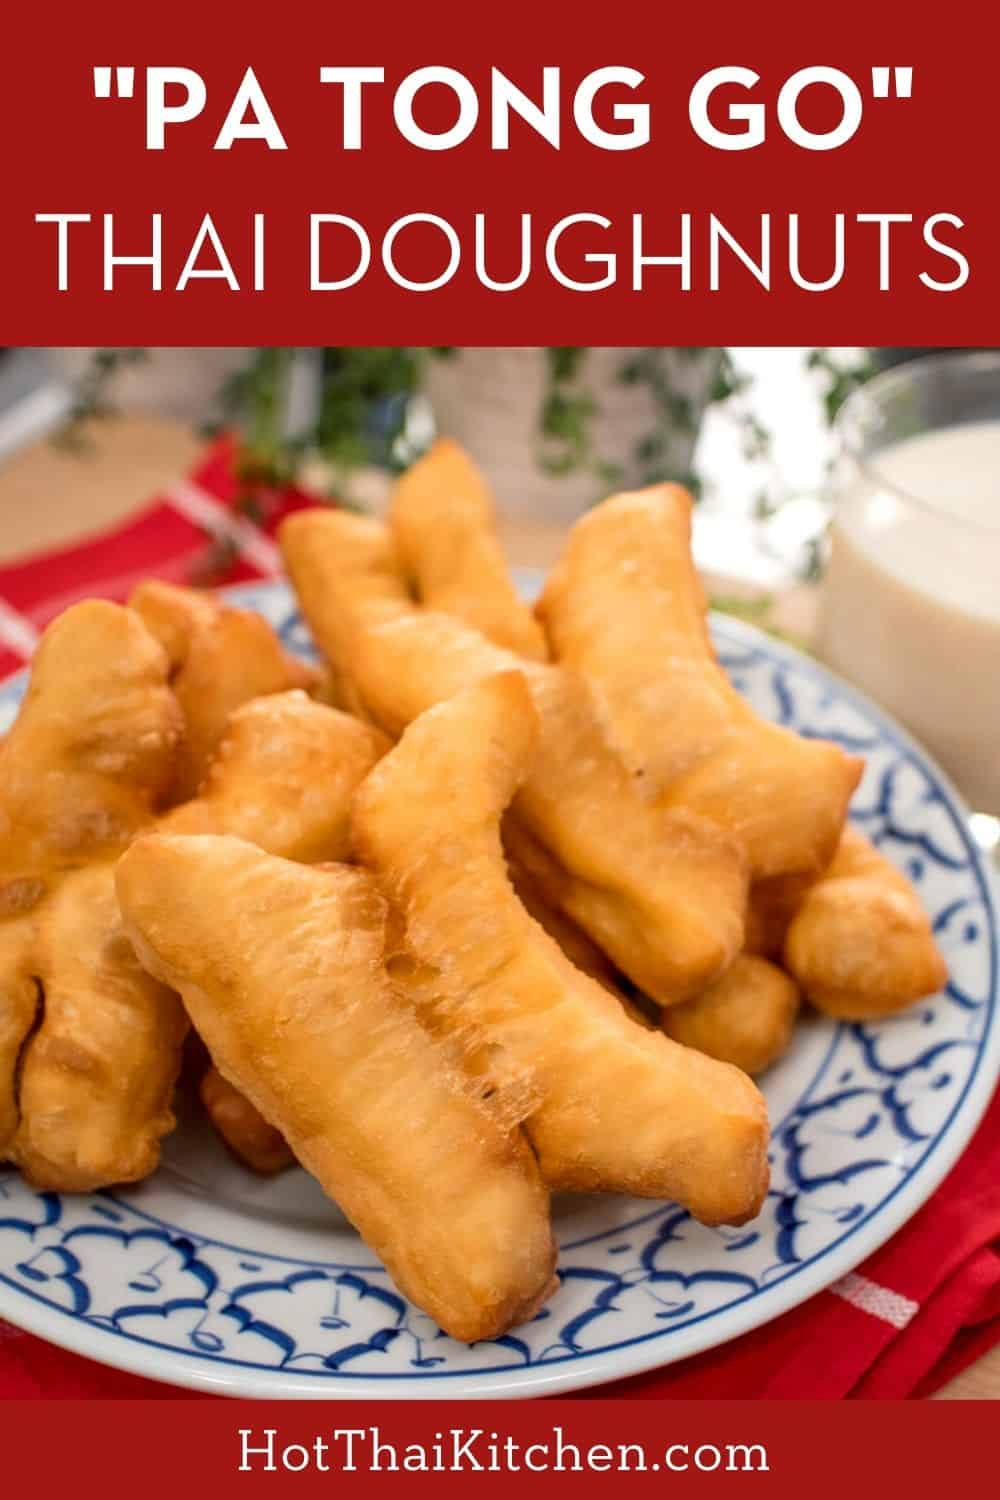 The ultimate Thai breakfast experience. This simple recipe is authentic and uses a key ingredient that yields the best, crispy, airy pa tong go, just like in Thailand! #thaifood #streetfood #chinesedoughnuts